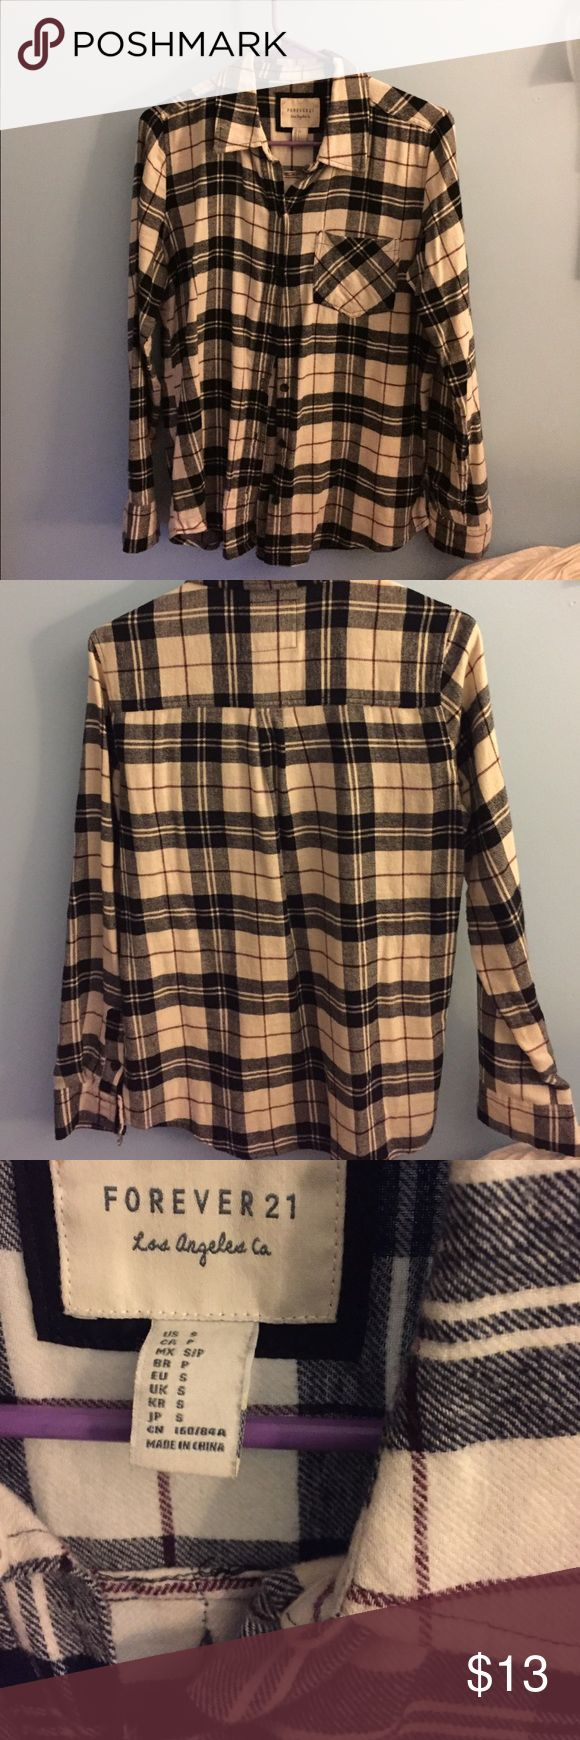 Plaid Flannel Button Down Shirt Black and white pattern with a thin maroon line as well. Very soft flannel material, only worn a few times. Forever 21 Tops Button Down Shirts